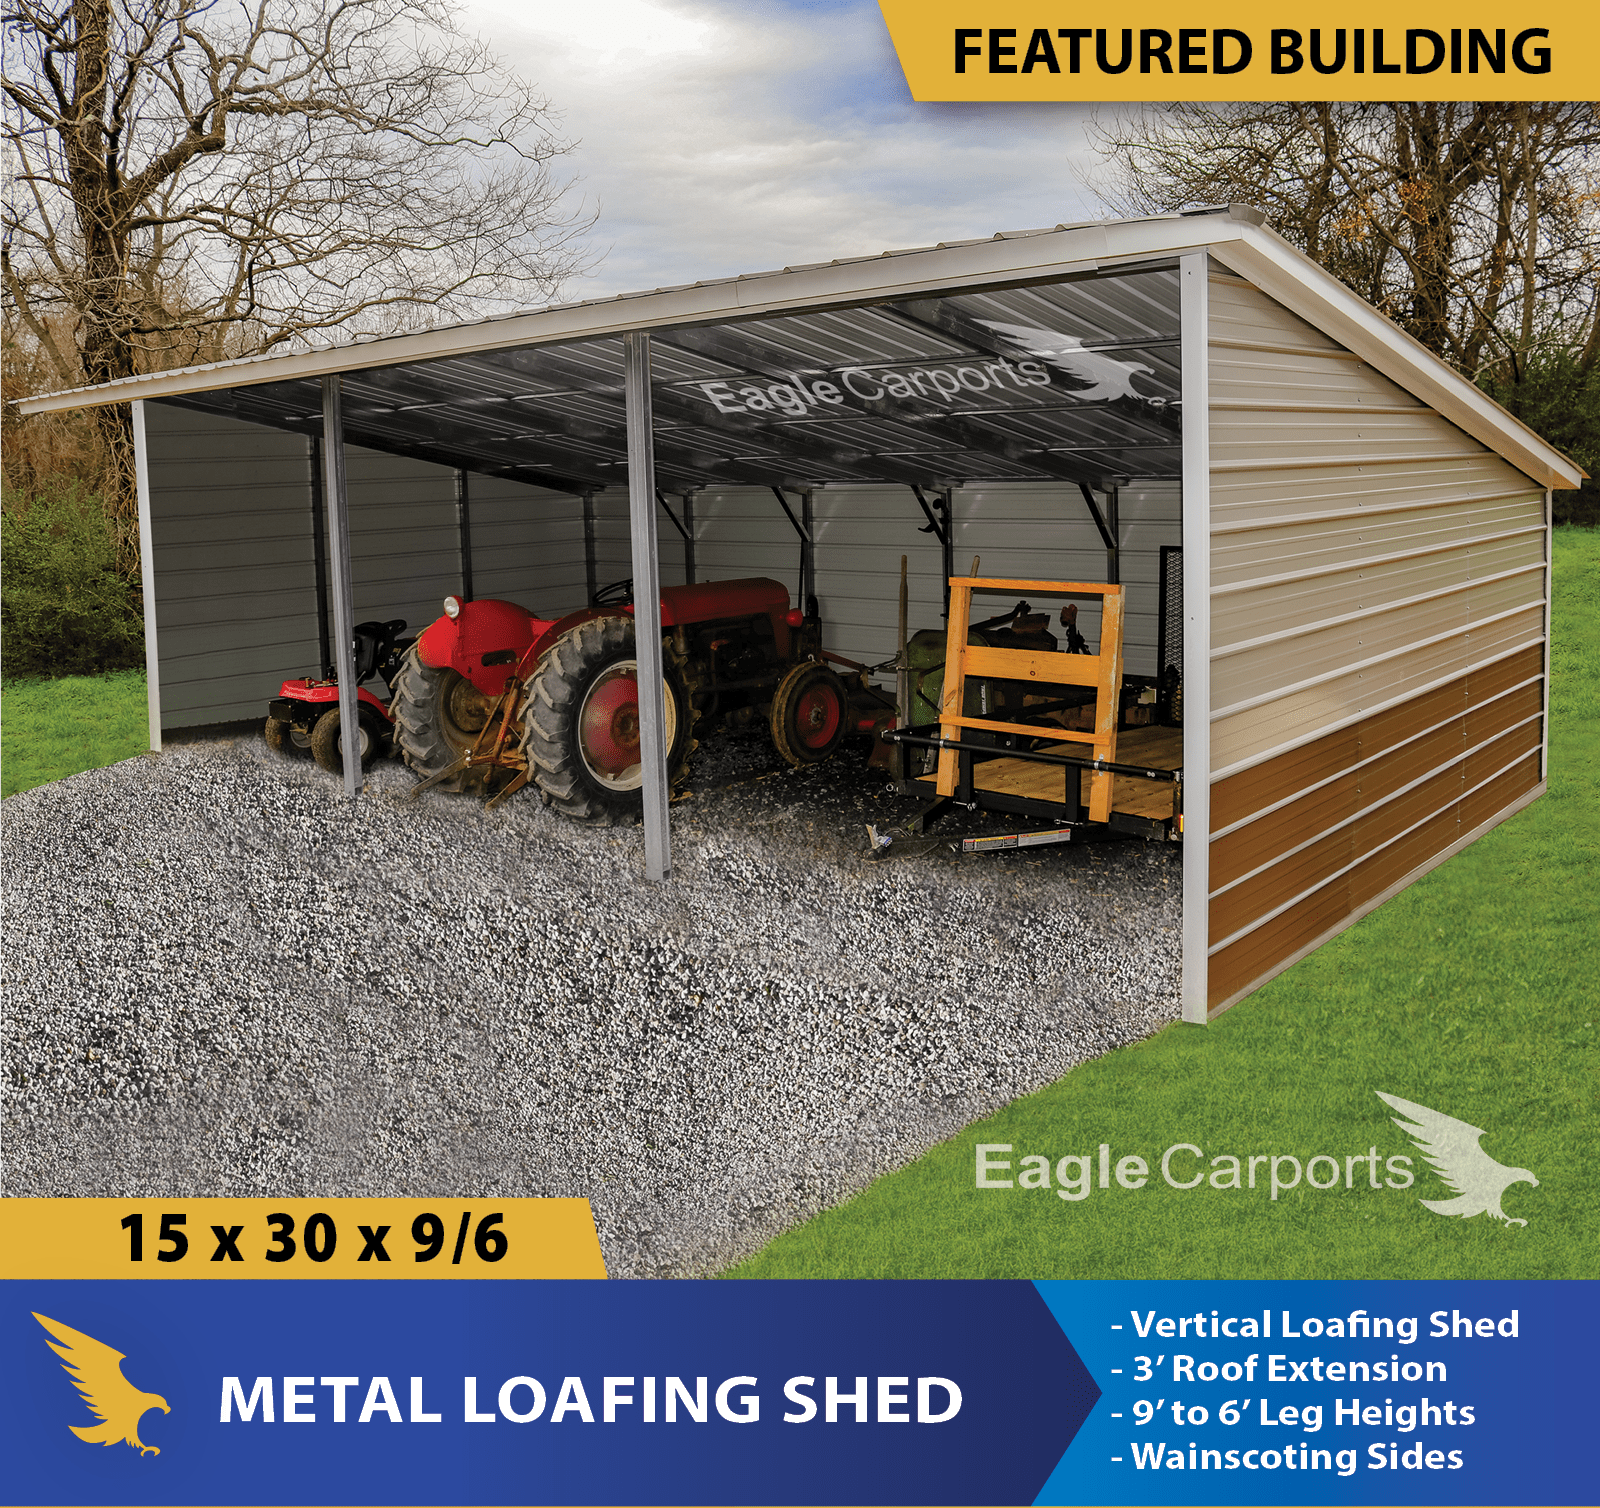 This week's featured building is a 15x30x9/6 Metal Loafing